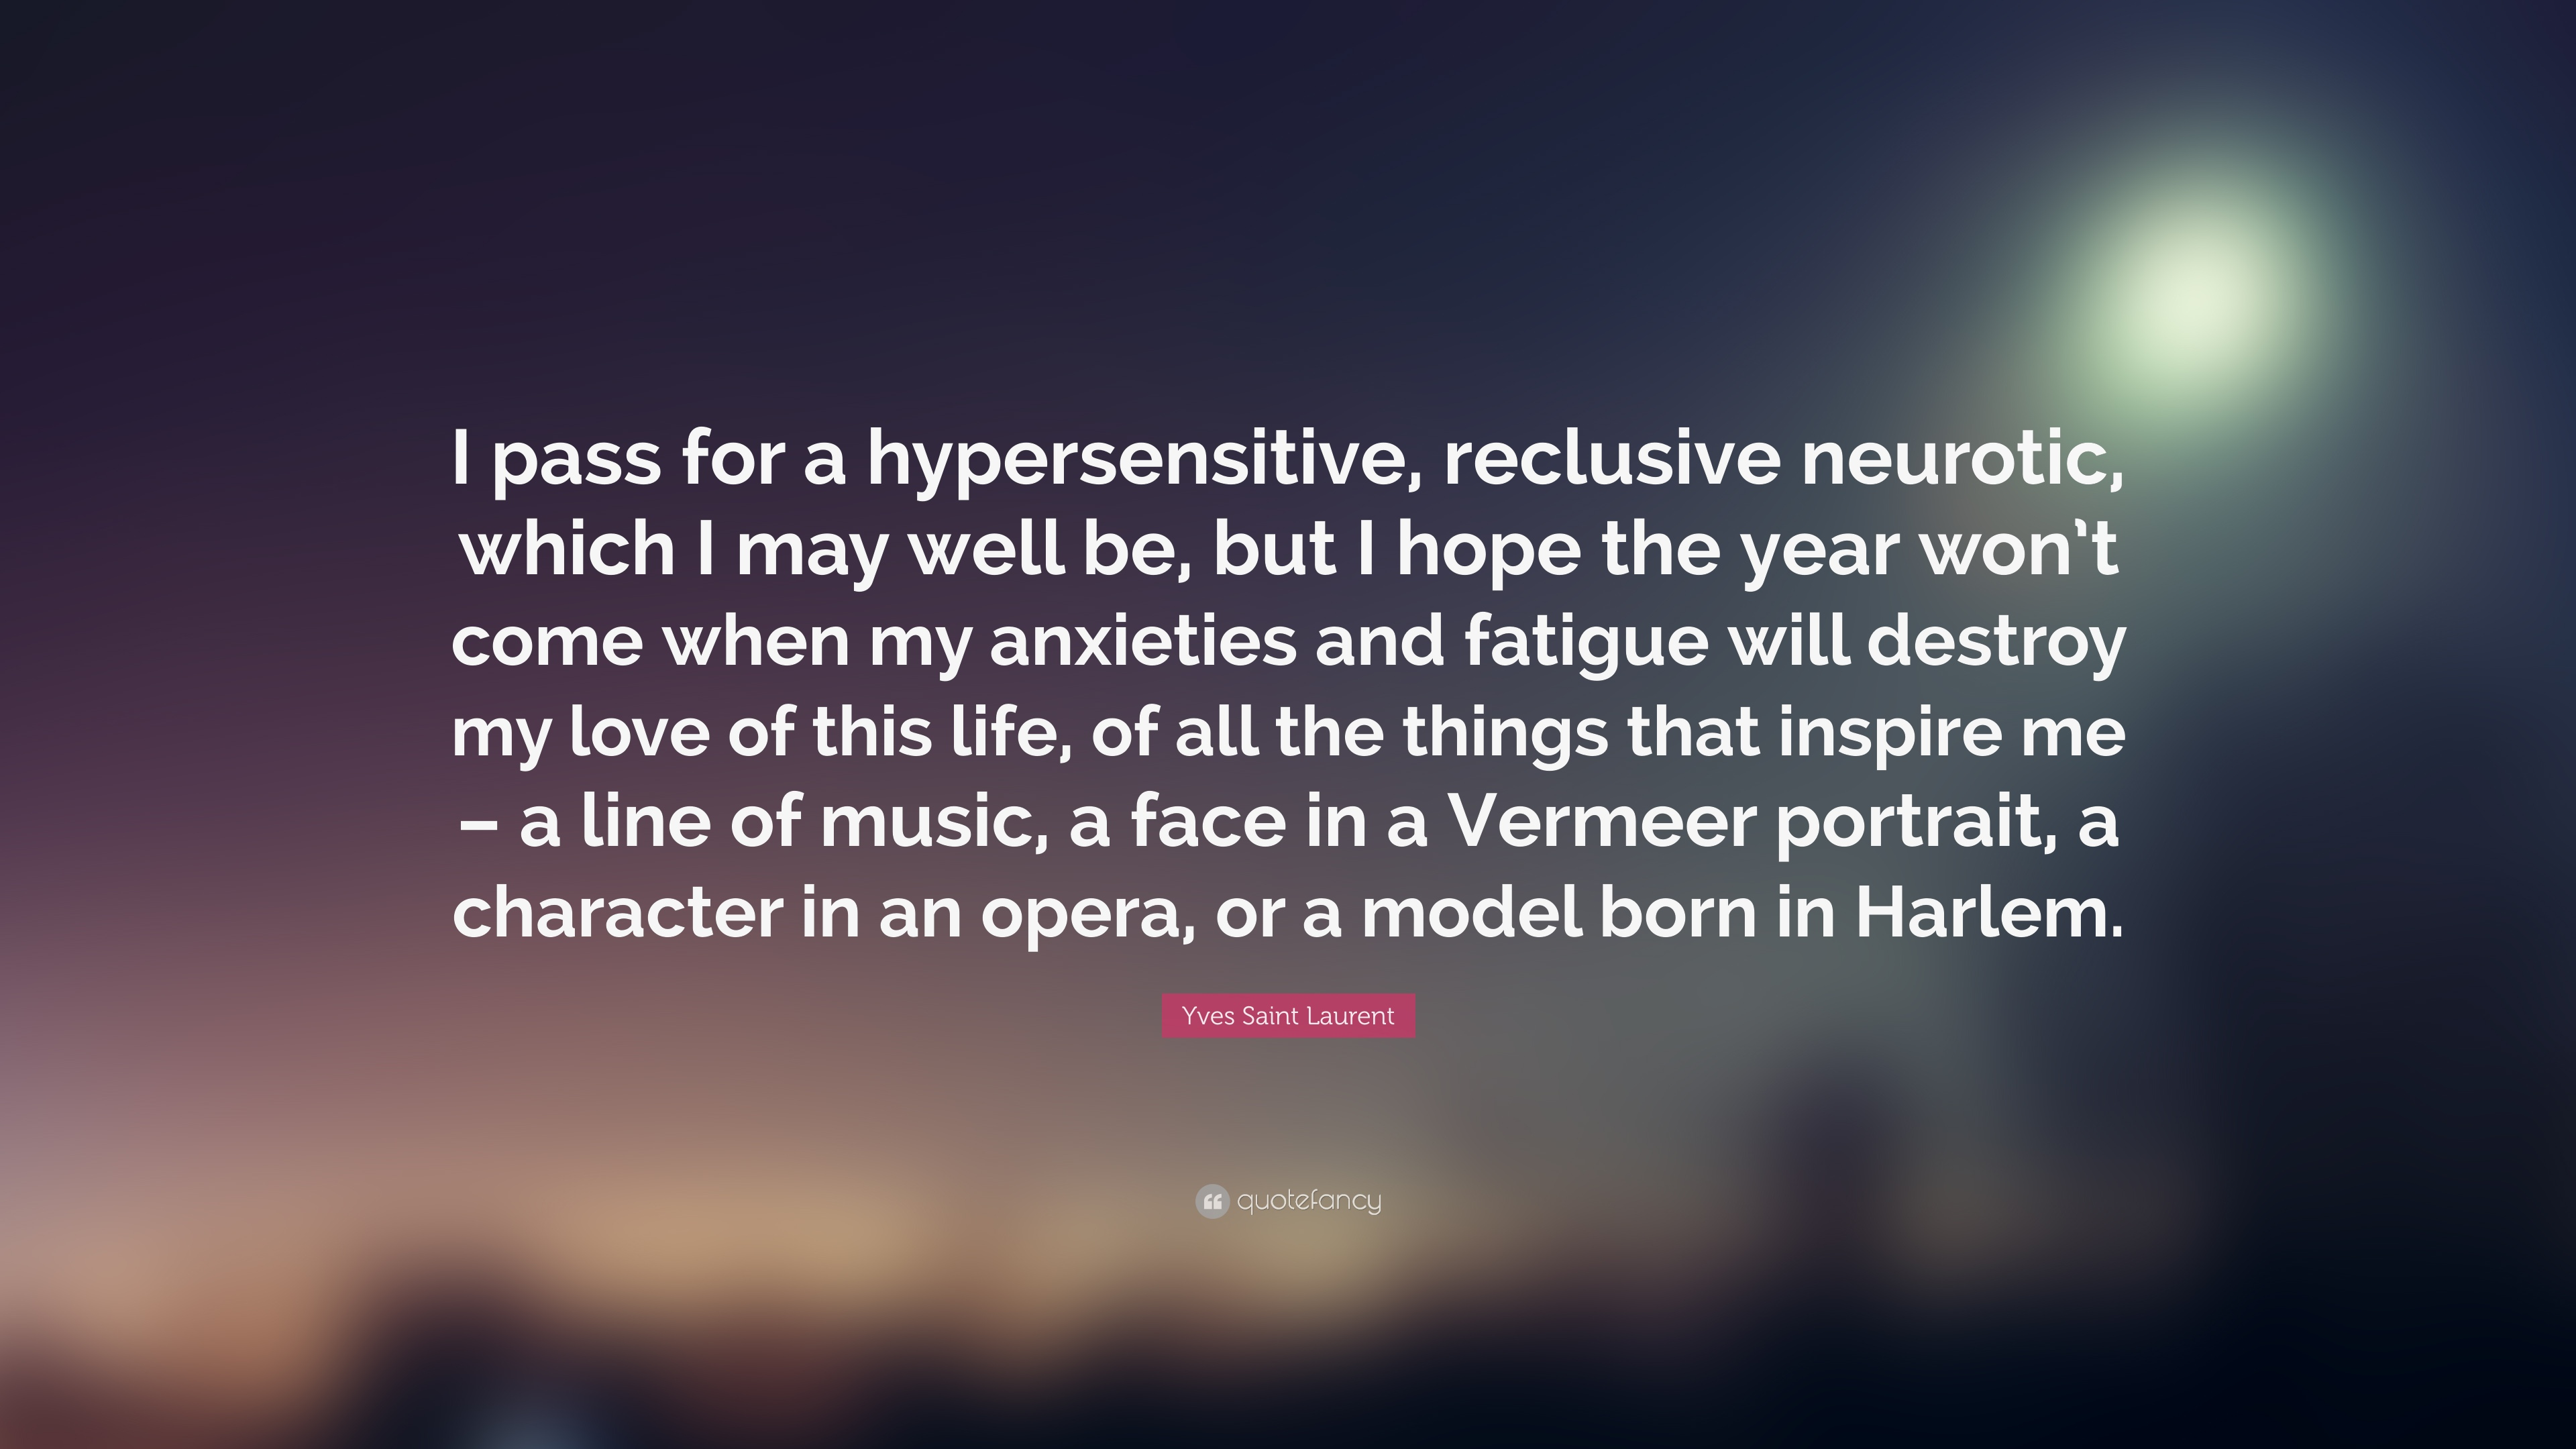 Yves Saint Laurent Quote: U201cI Pass For A Hypersensitive, Reclusive Neurotic,  Which